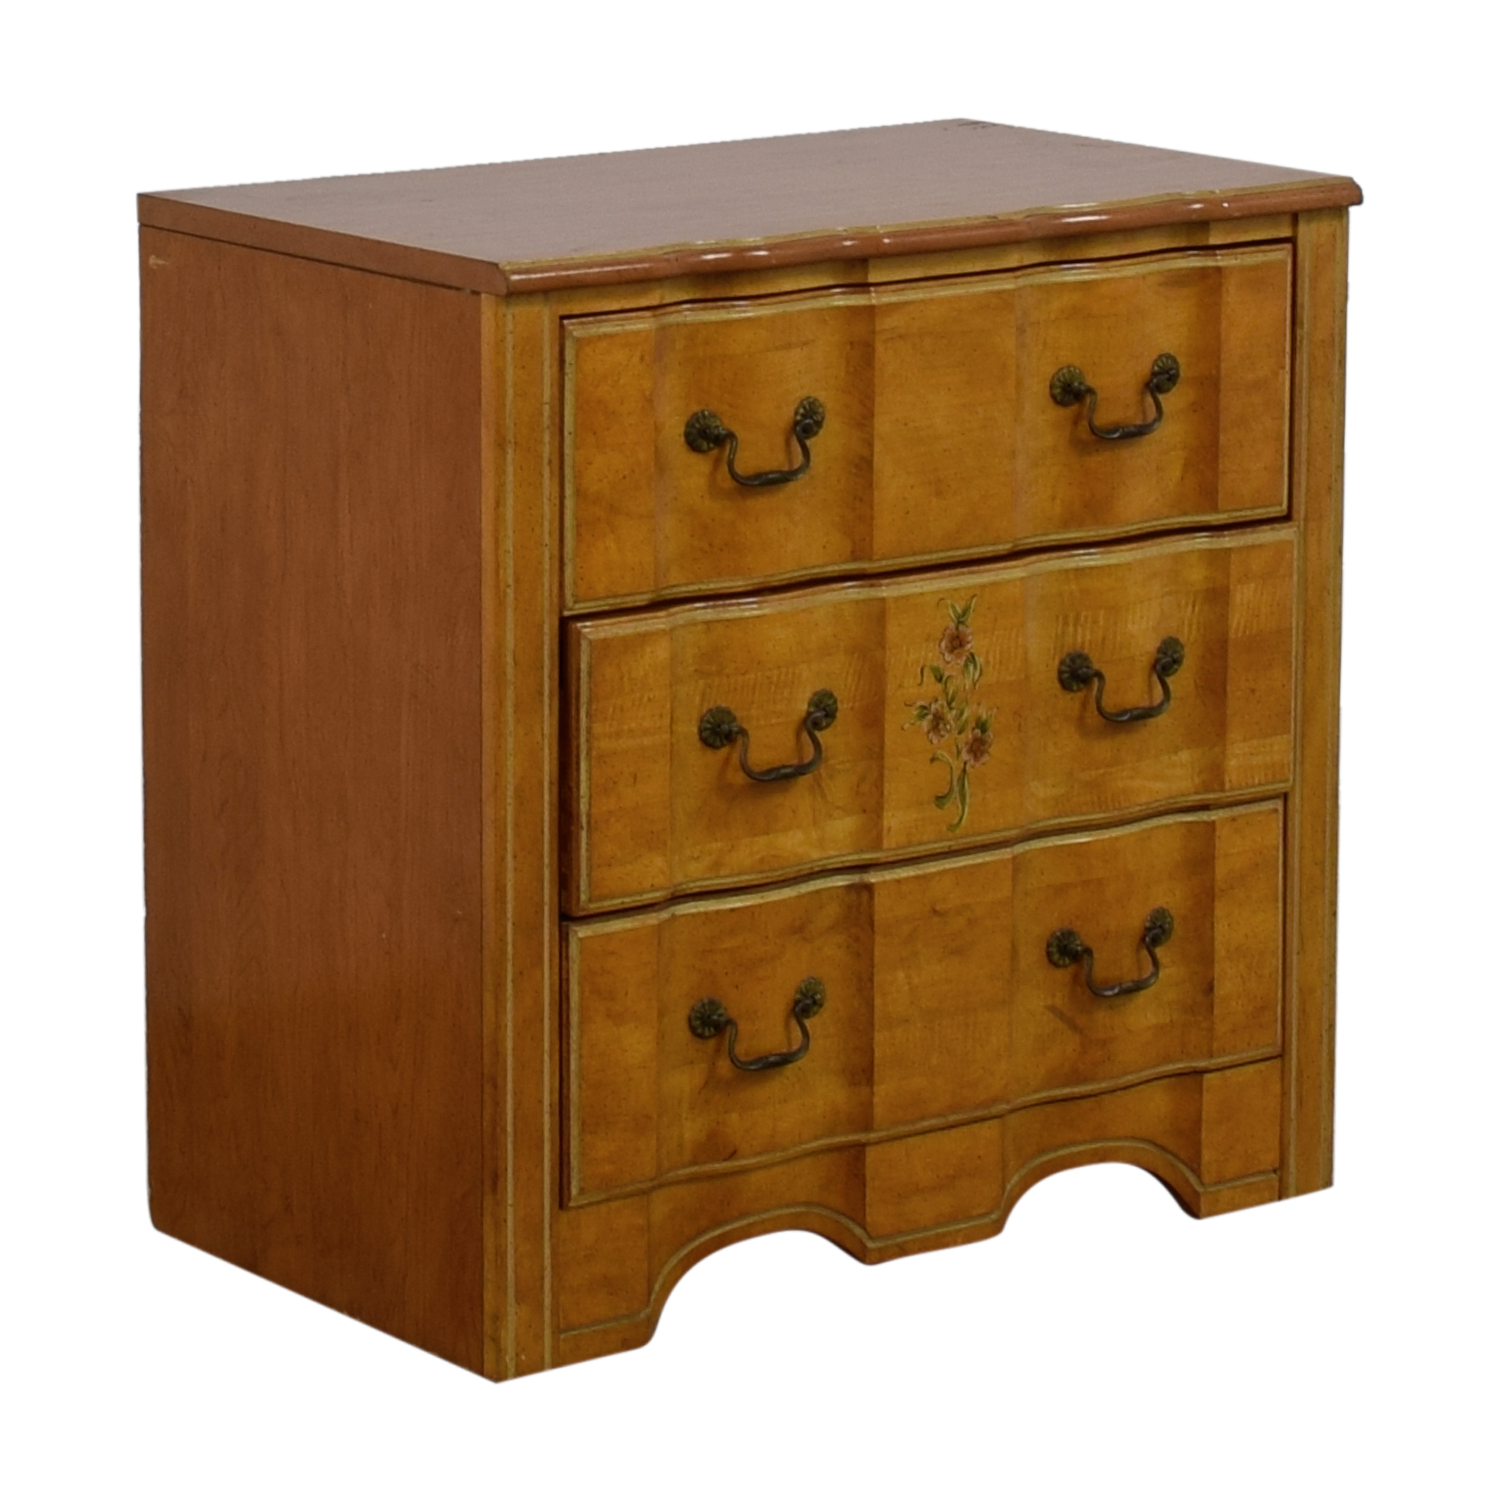 Vintage Painted Three-Drawer Chest of Drawers used